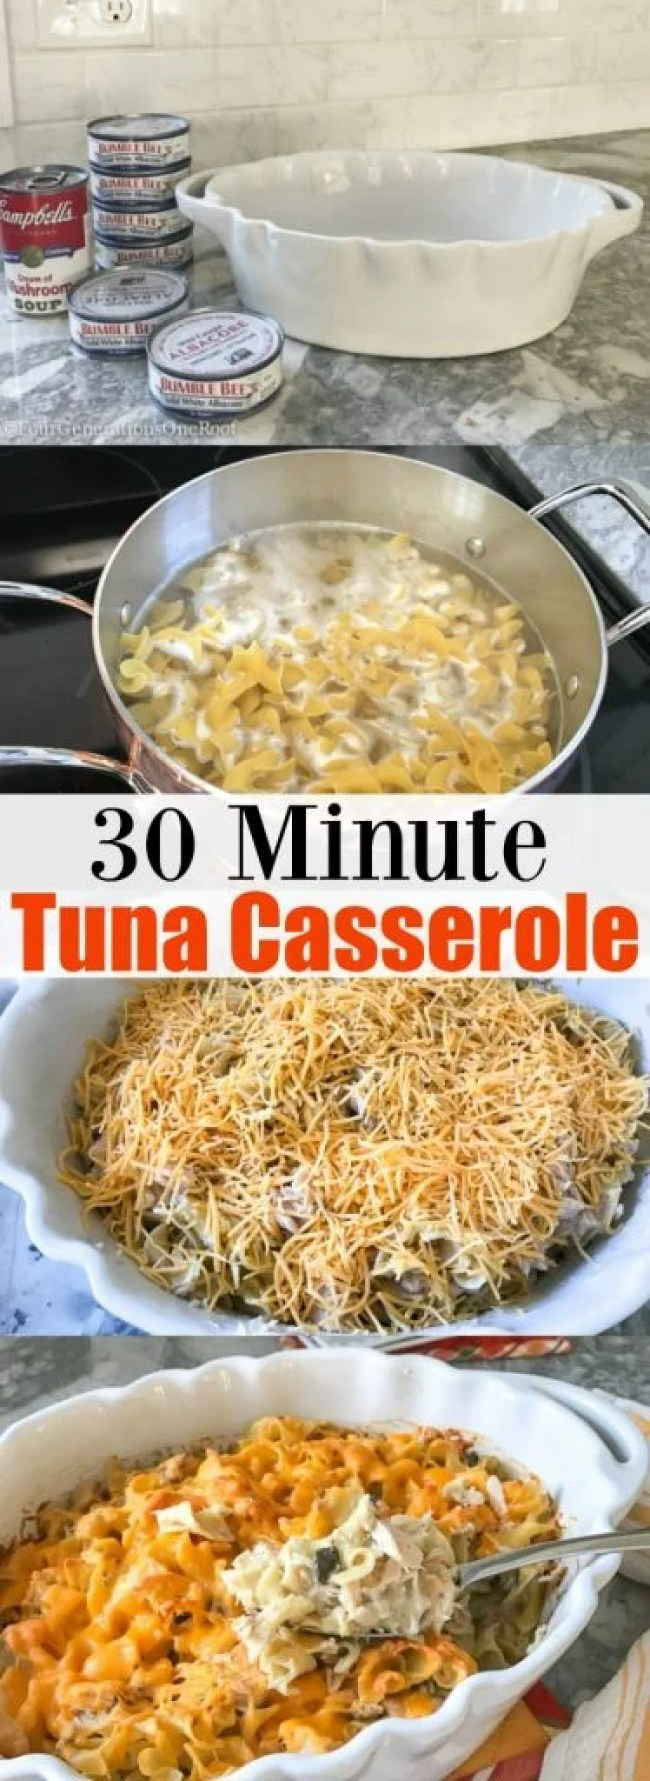 Easy Tuna Casserole Recipe   Made with Cream of Mushroom soup, Egg Noodles, and Cheese